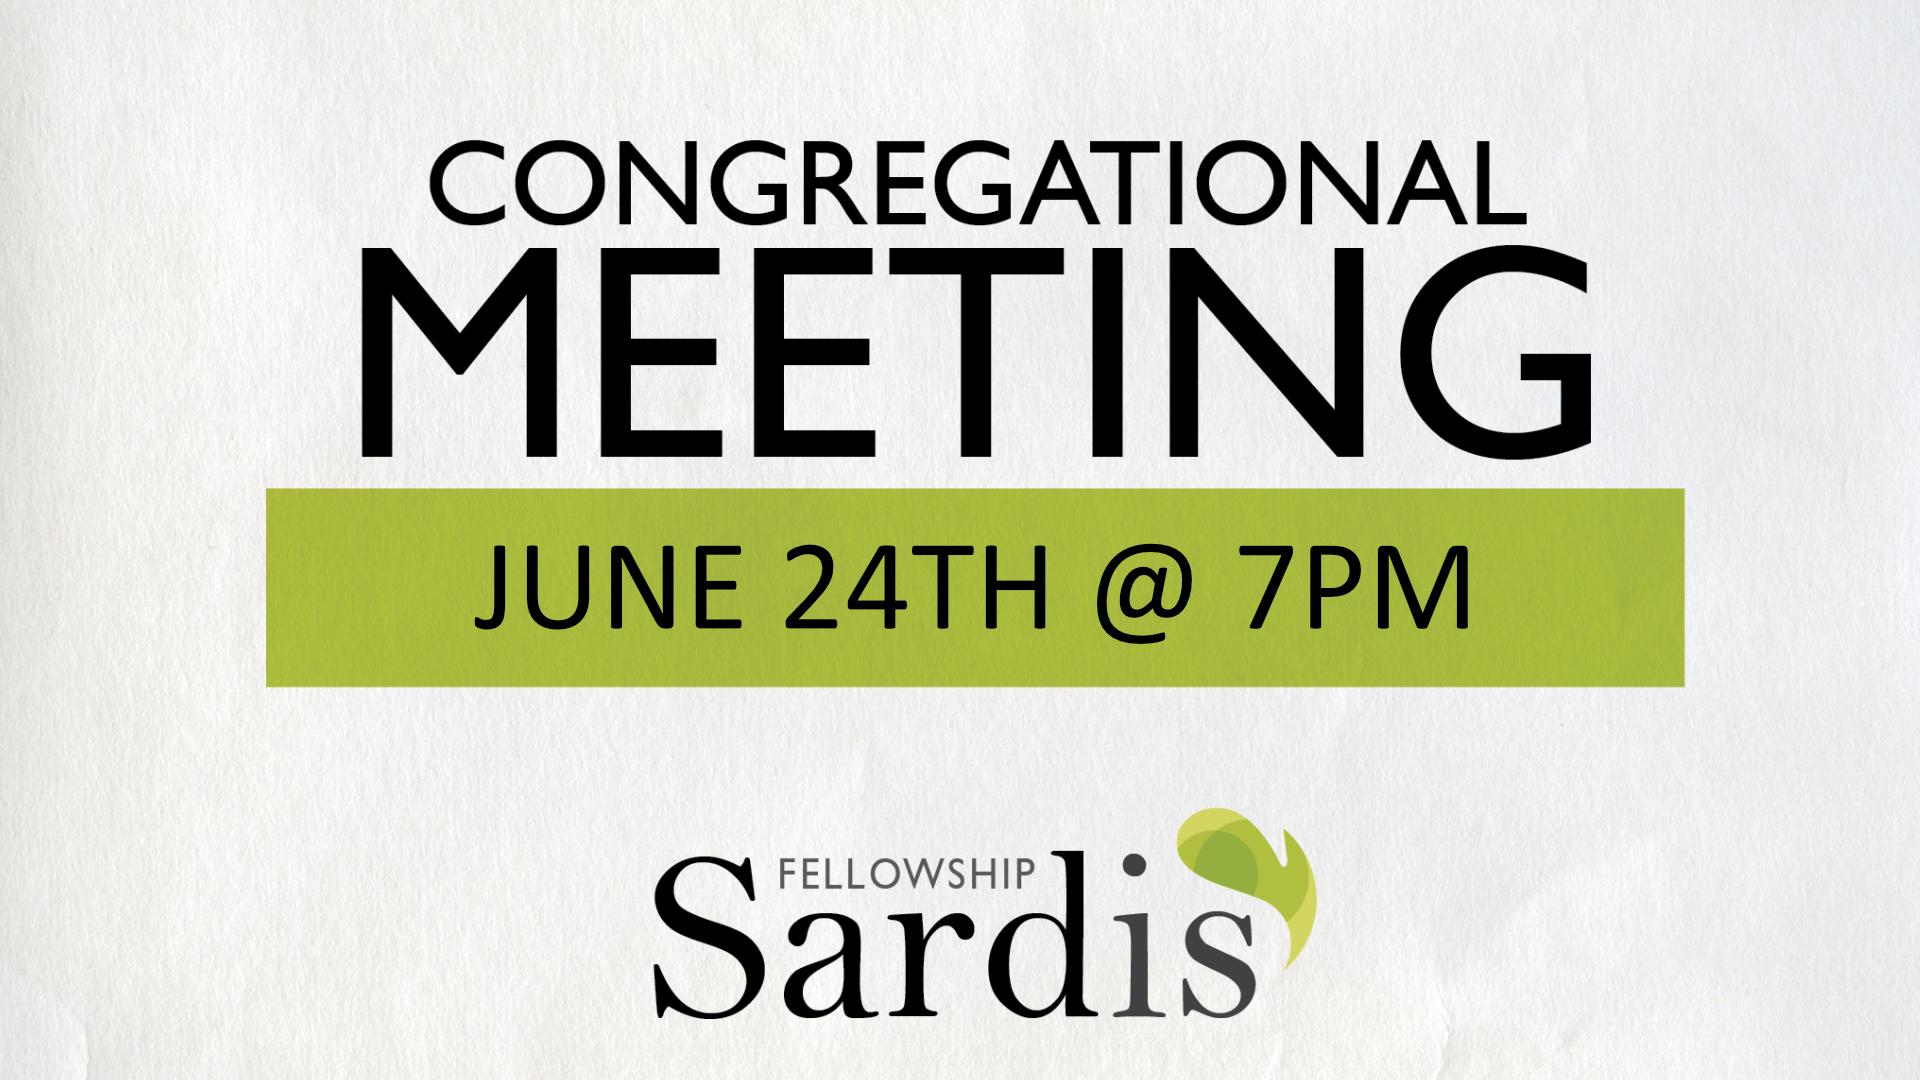 Congregational Meeting Power Point-June 24, 2019.png